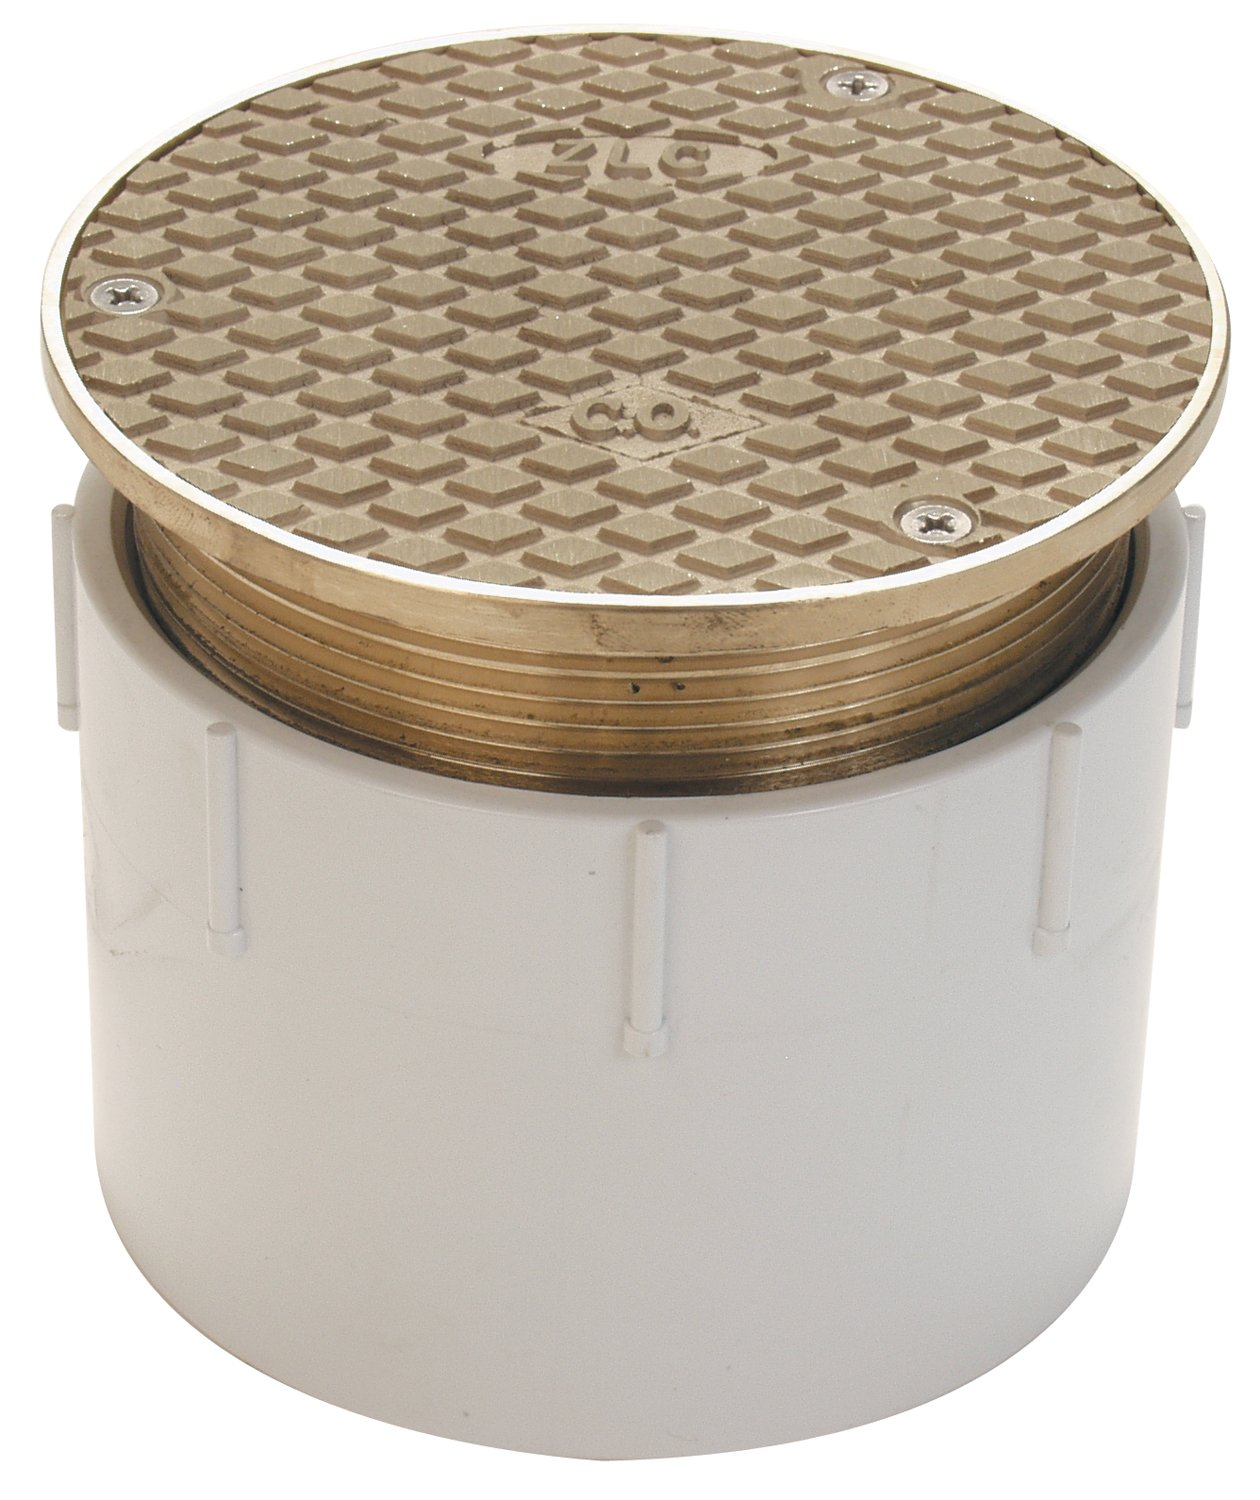 Zurn CO2450-PV4, Adjustable Floor Cleanout, 4 Inch PVC Hub Connection , Brass by Zurn